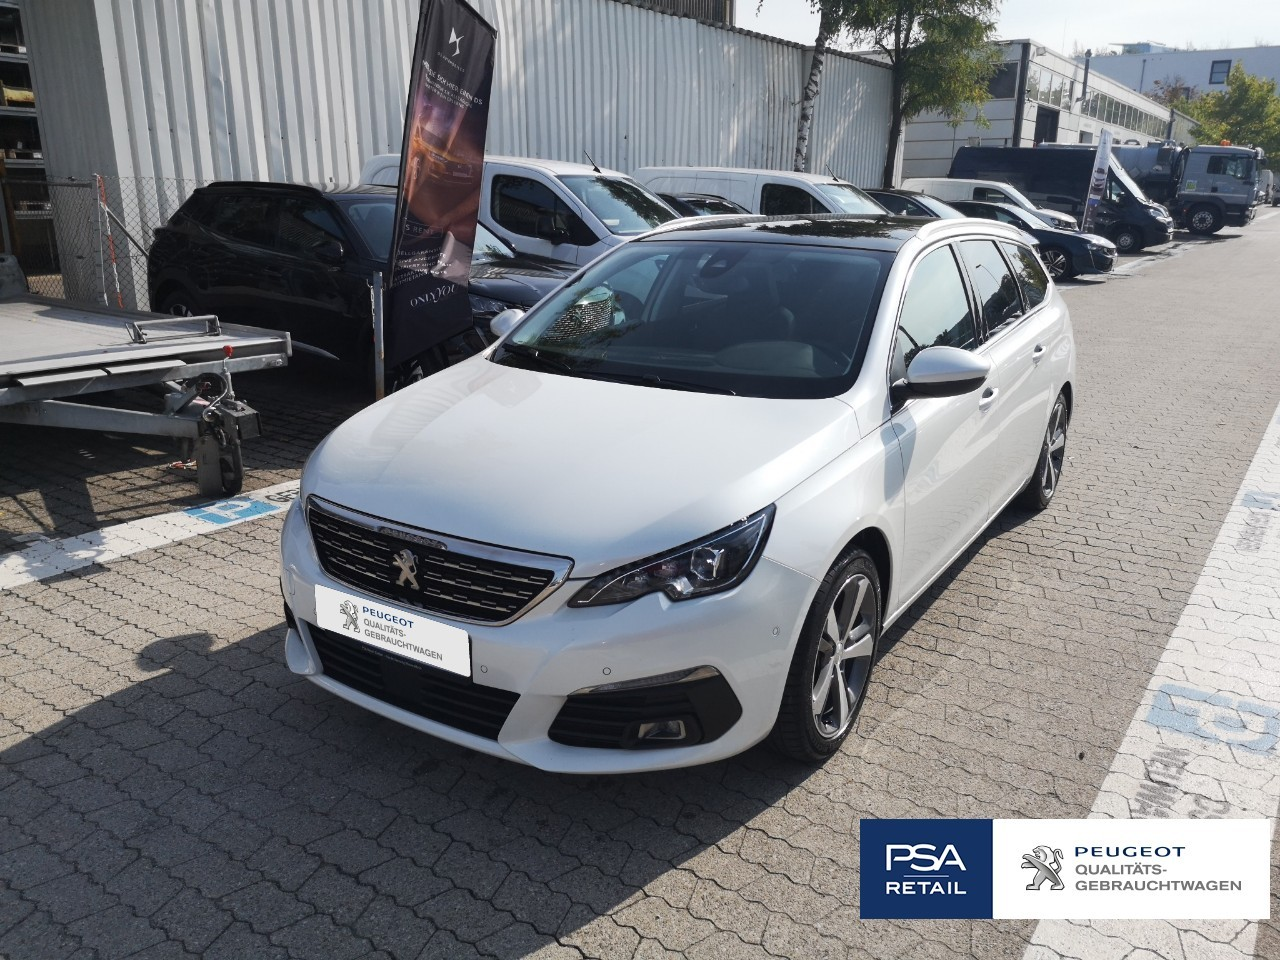 Peugeot 308 SW BlueHDi 130 EAT8 Stop & Start Allure NAVI